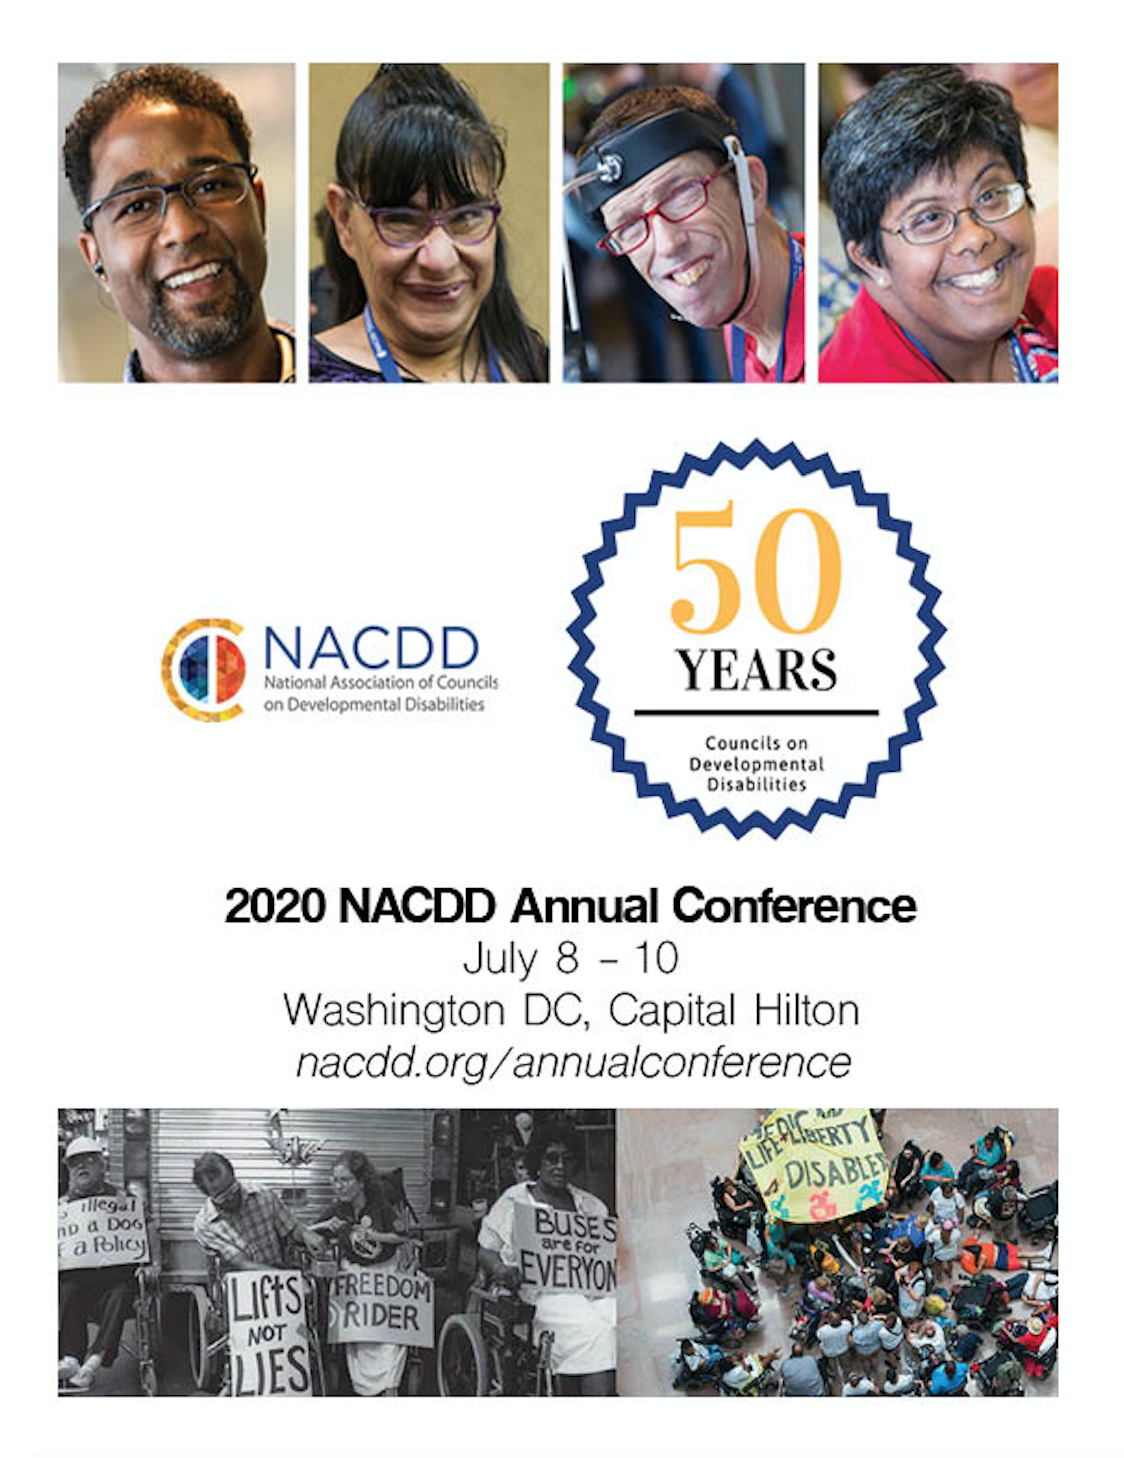 NACDD Annual Conference Flyer for July 8-10